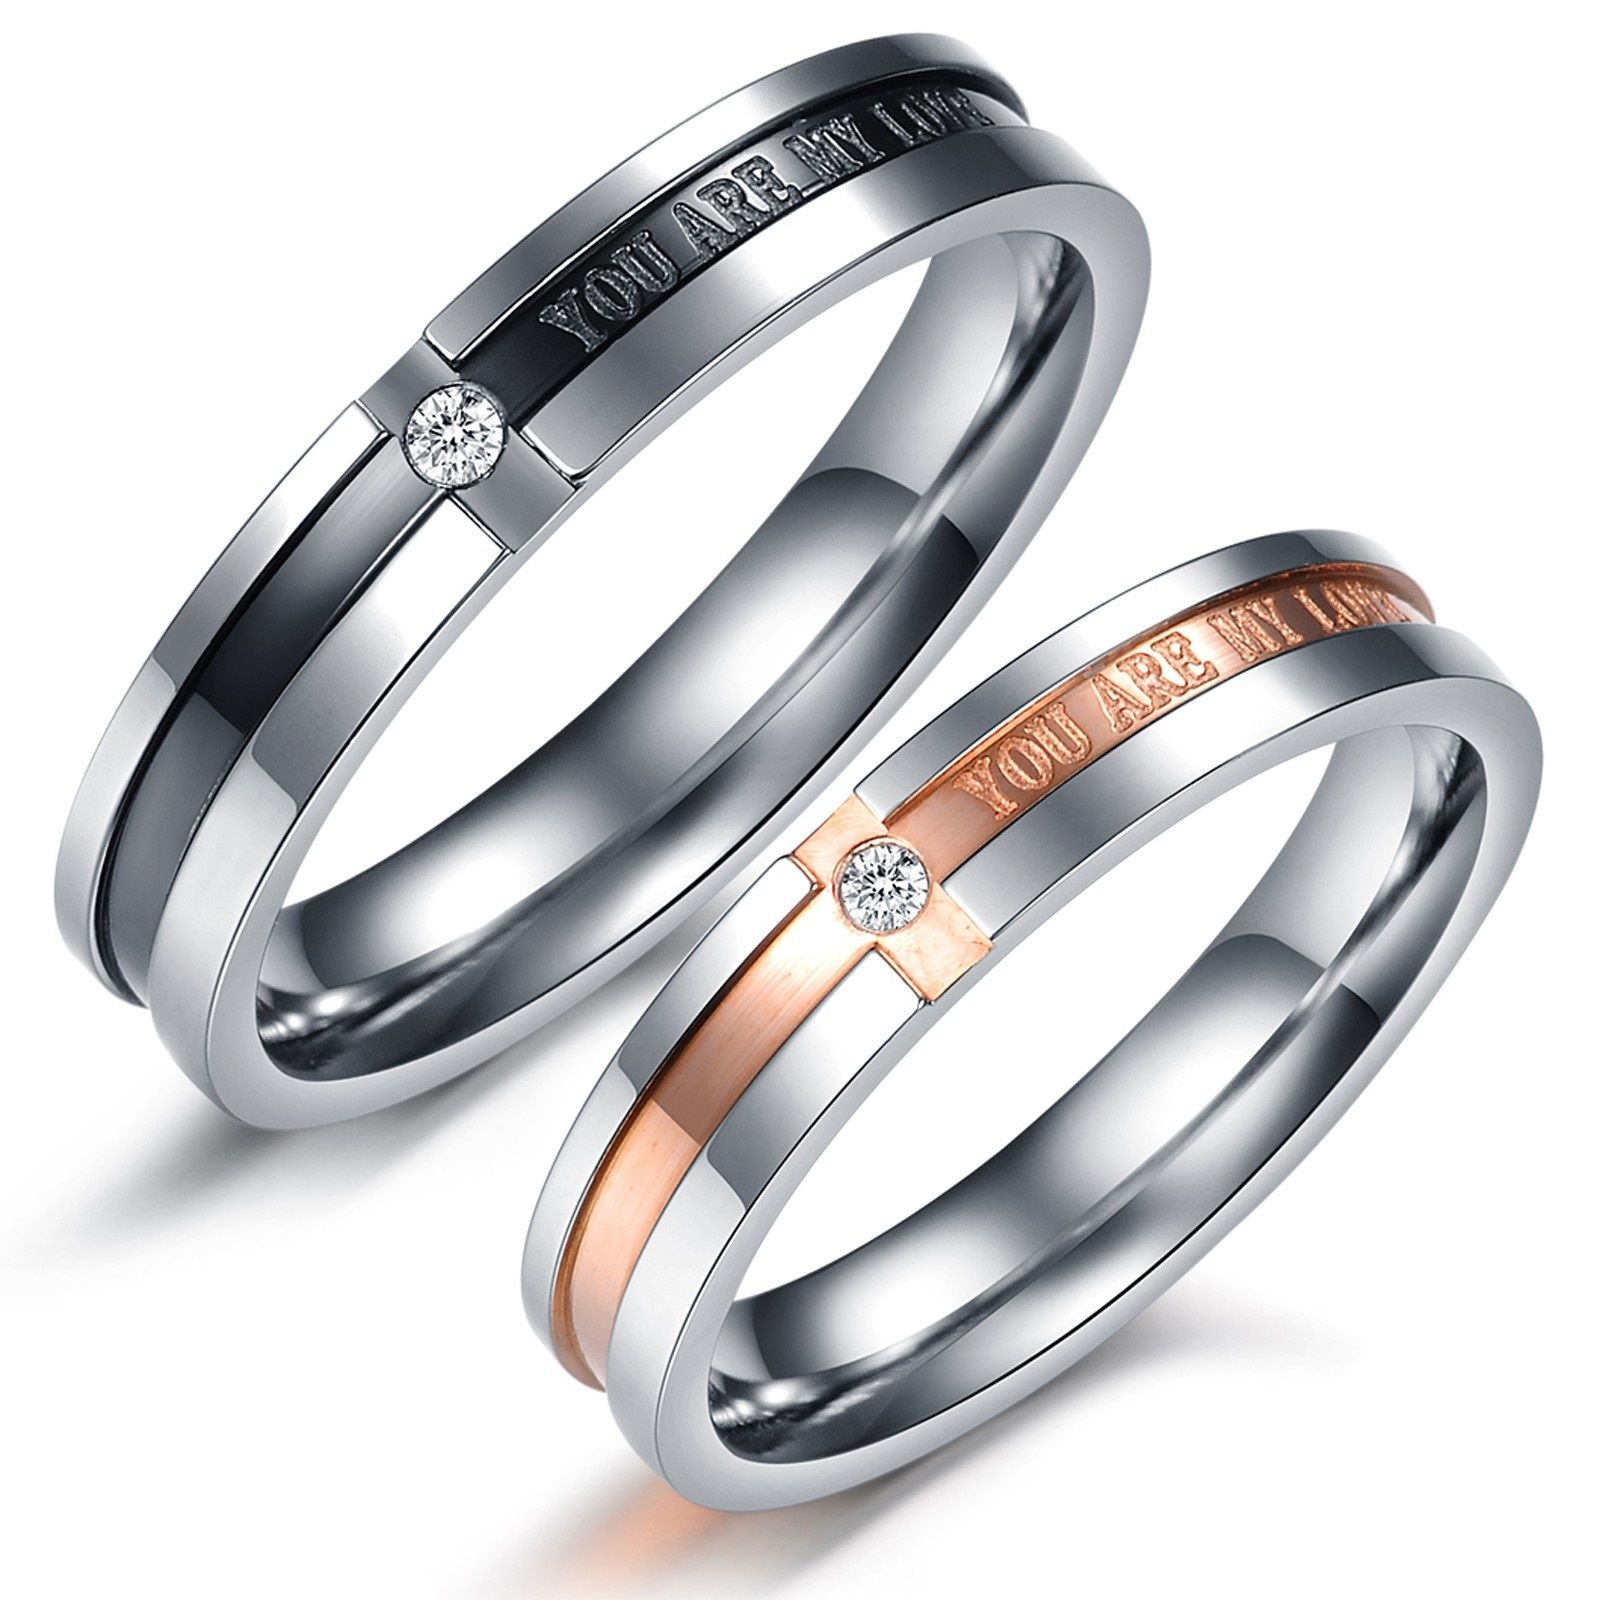 wedding band for her Simple bu elegant couples rings Matching Couple Titanium Steel Engagement Promise Ring Wedding Bands